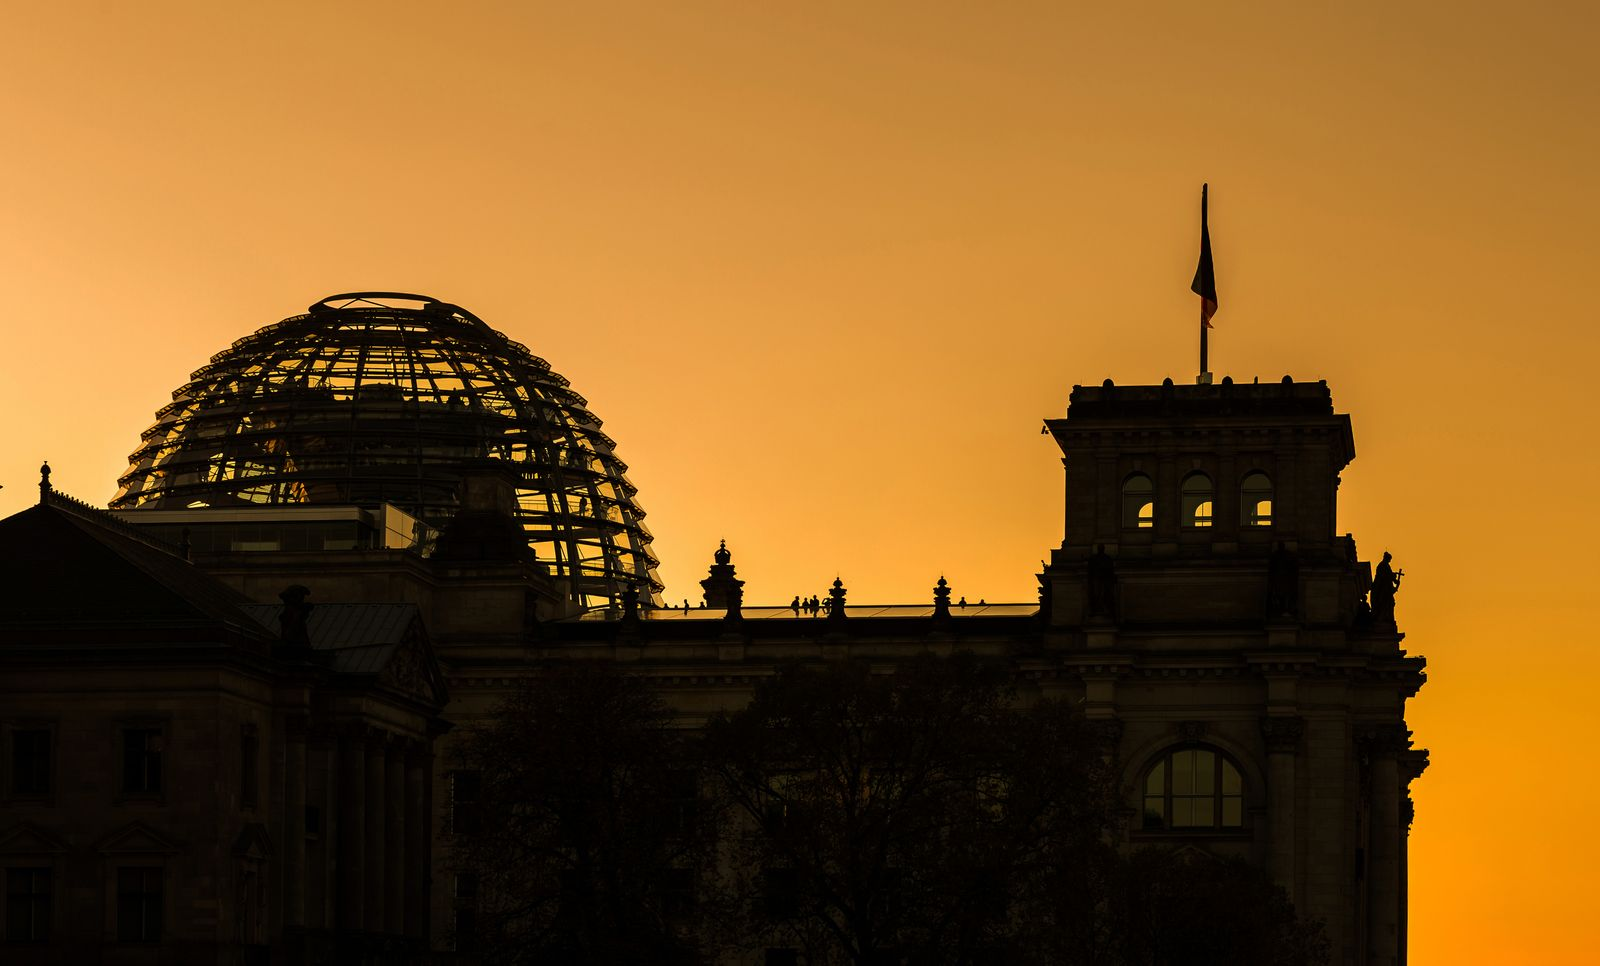 Reichstag building silhouette (German parliament building) - Berlin, Germany